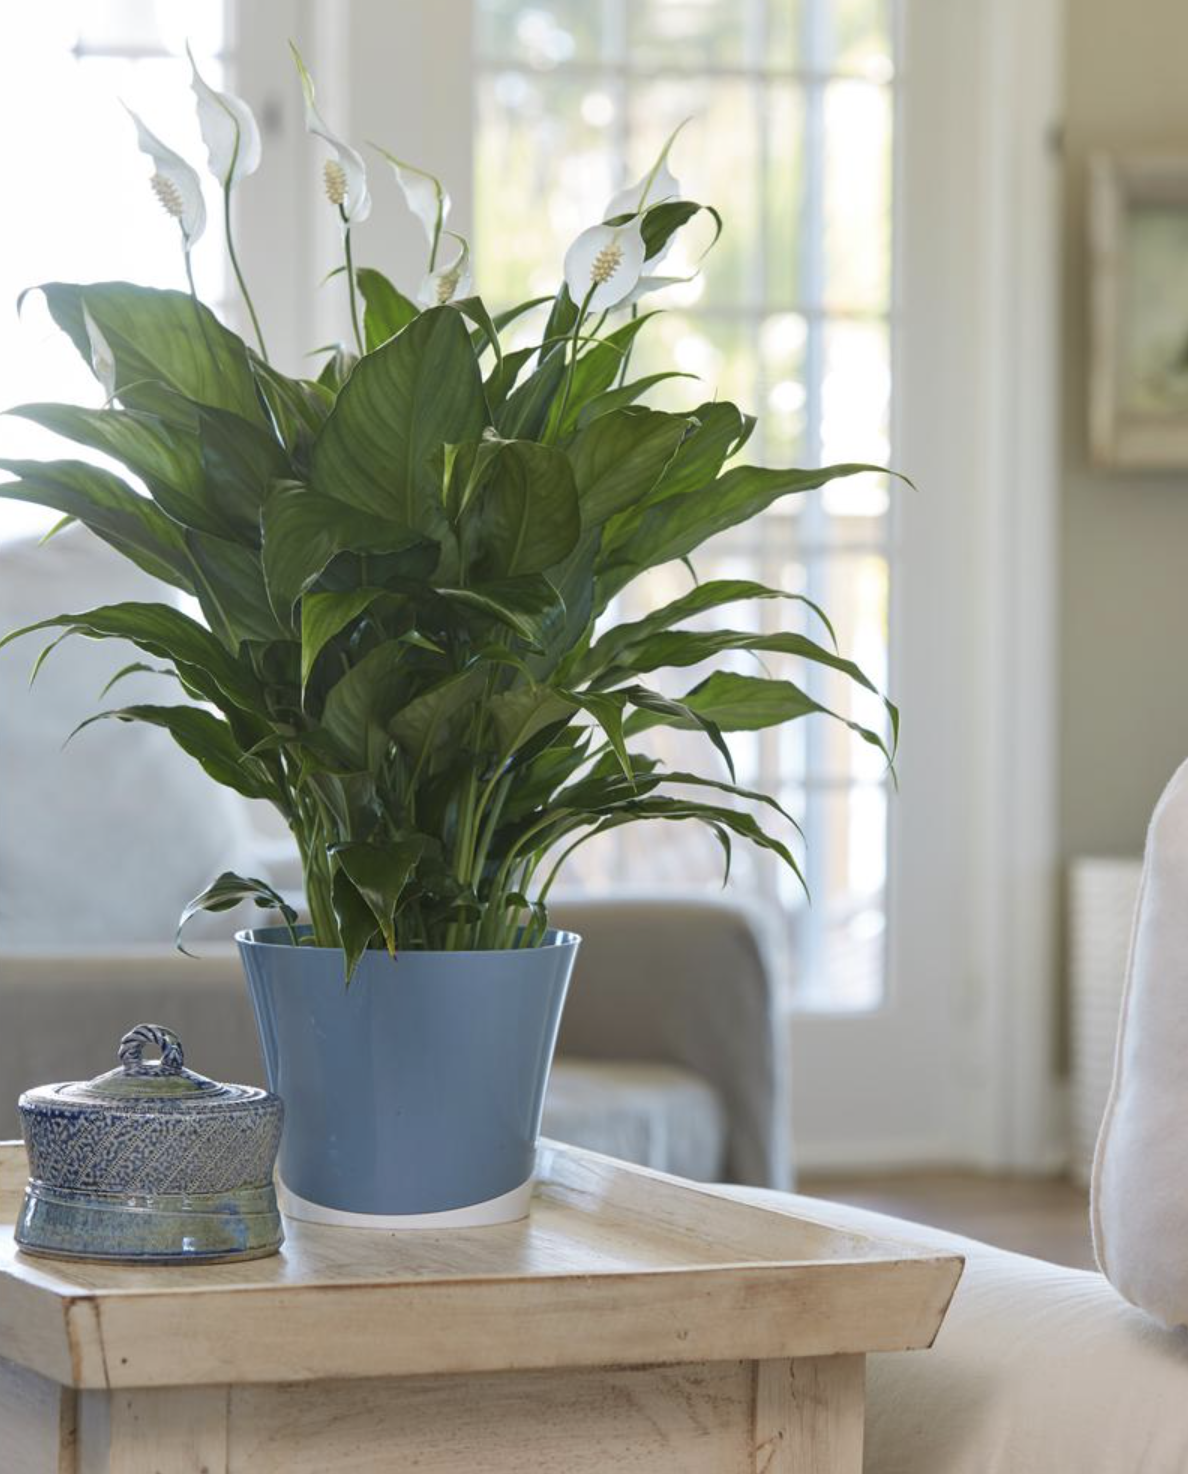 A flowering Peace Lily sitting on a table. It has large leaves and white flowers